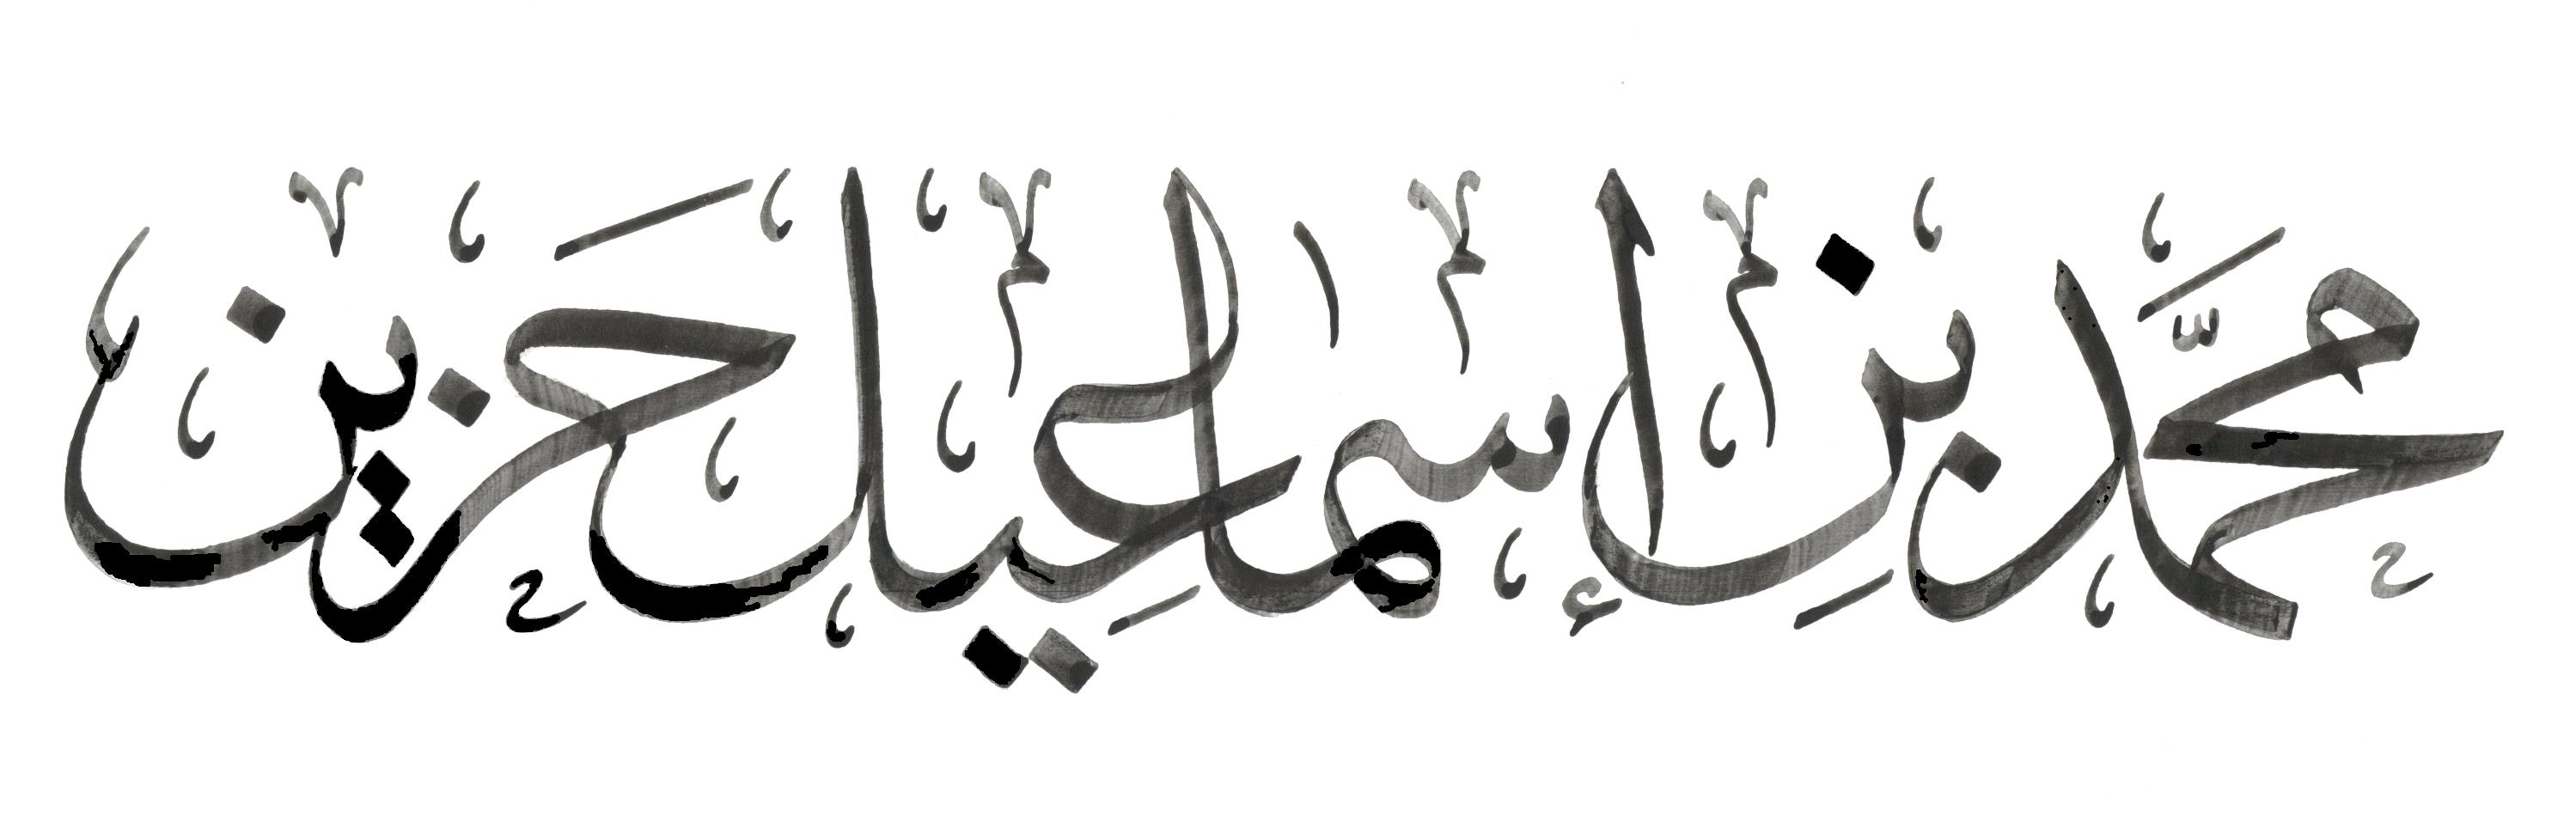 Arabic calligraphy fonts imgkid the image kid